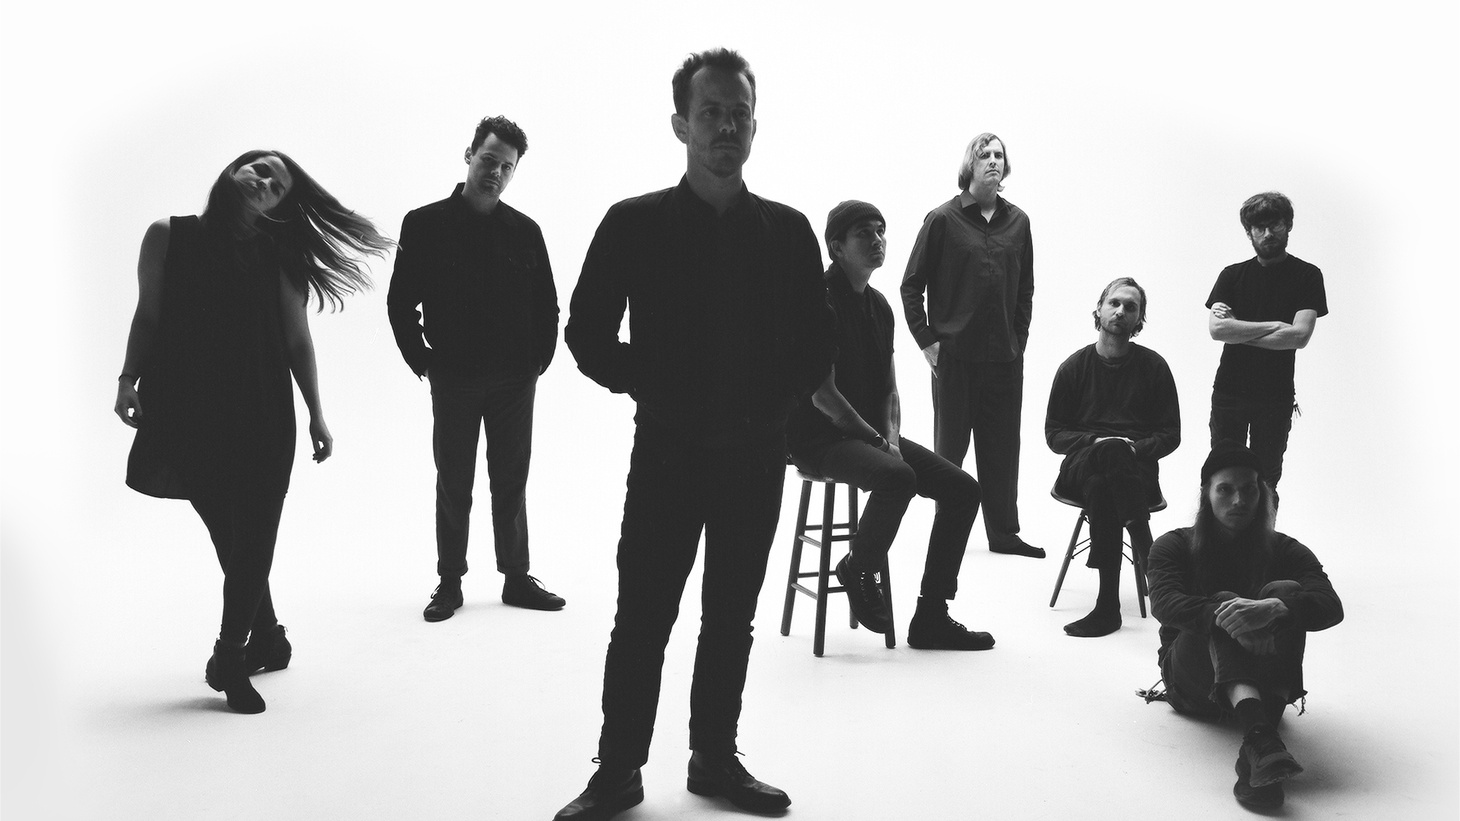 Portland, Oregon collective Typhoon crafts ornate, big-hearted indie rock anthems and returned with their highly anticipated album Offerings after a four-year hiatus.